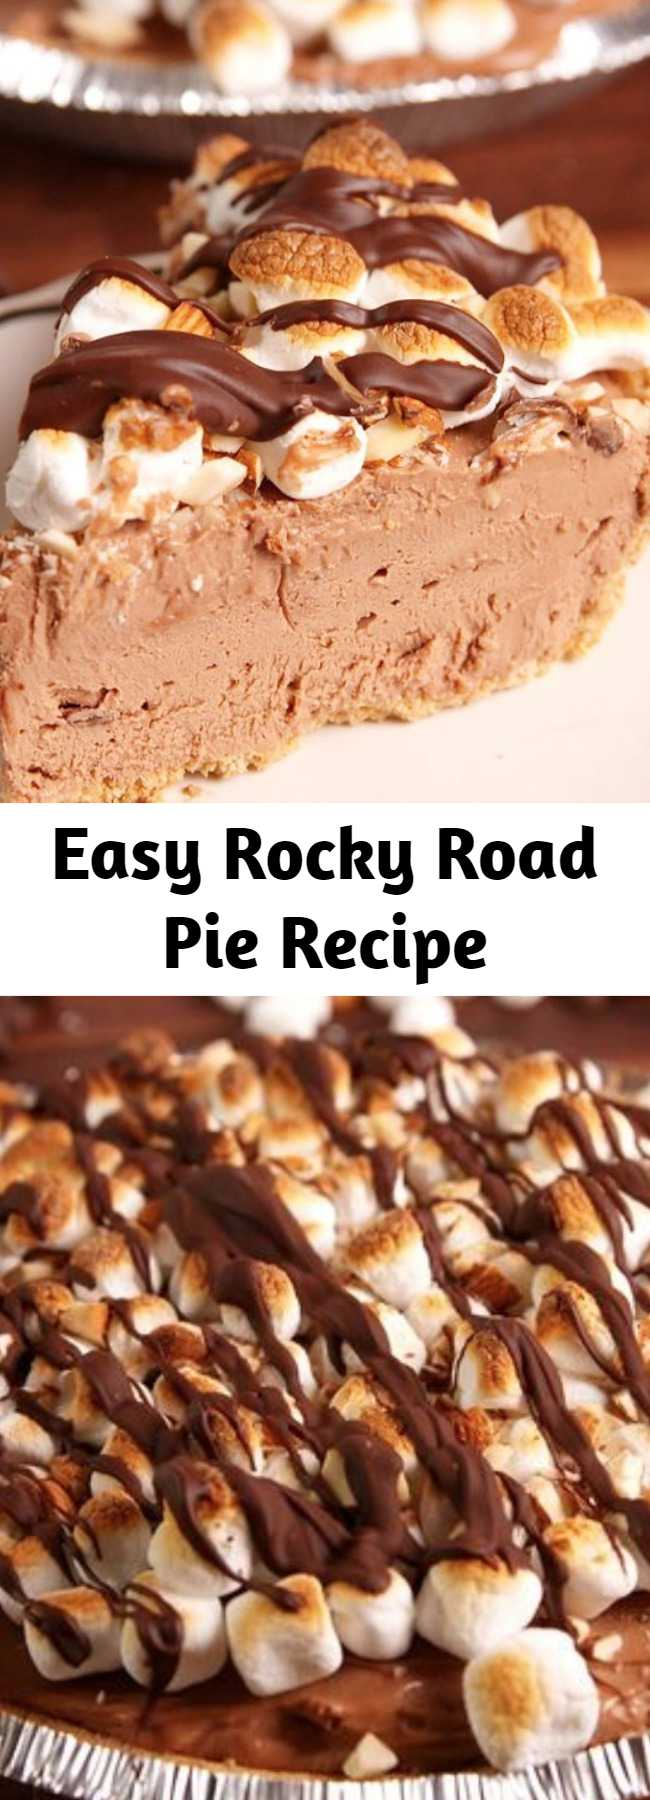 Easy Rocky Road Pie Recipe - Turn your favorite ice cream flavor into a no-bake pie with this easy recipe for rocky road pie.